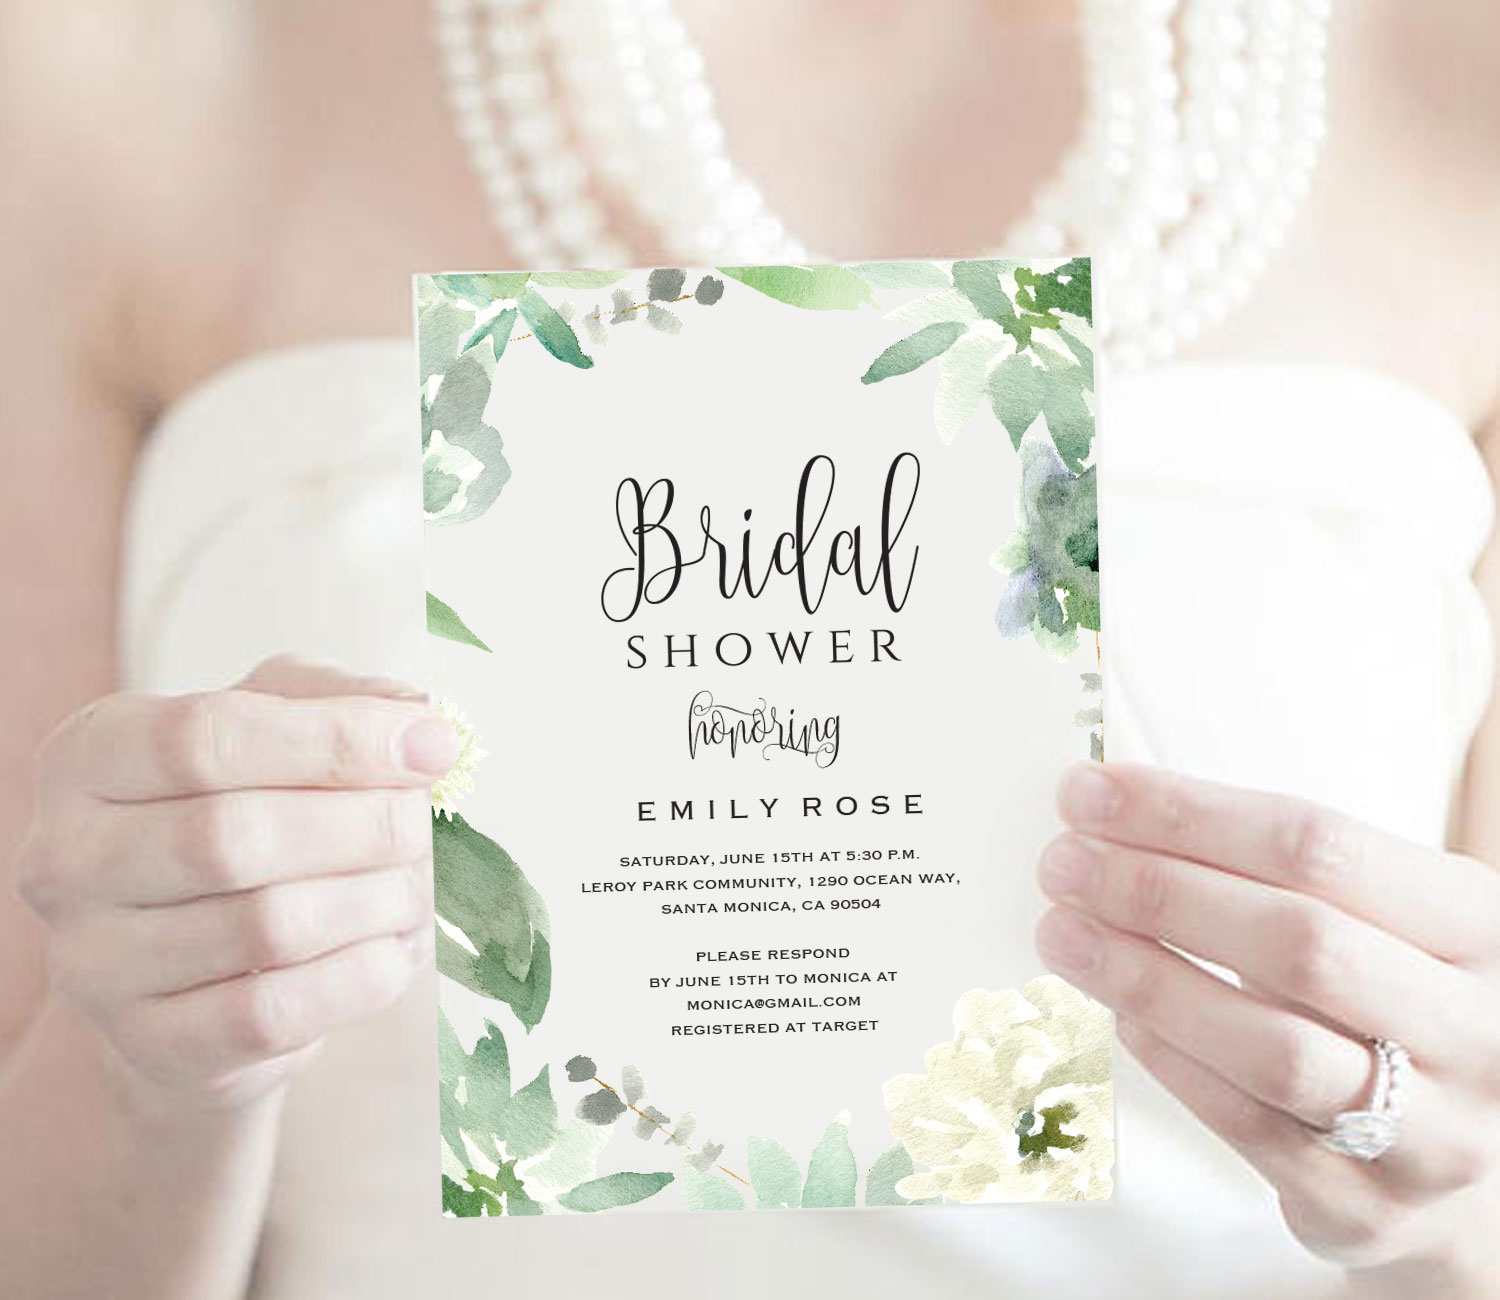 Bridal Shower Invitation Template example image 2